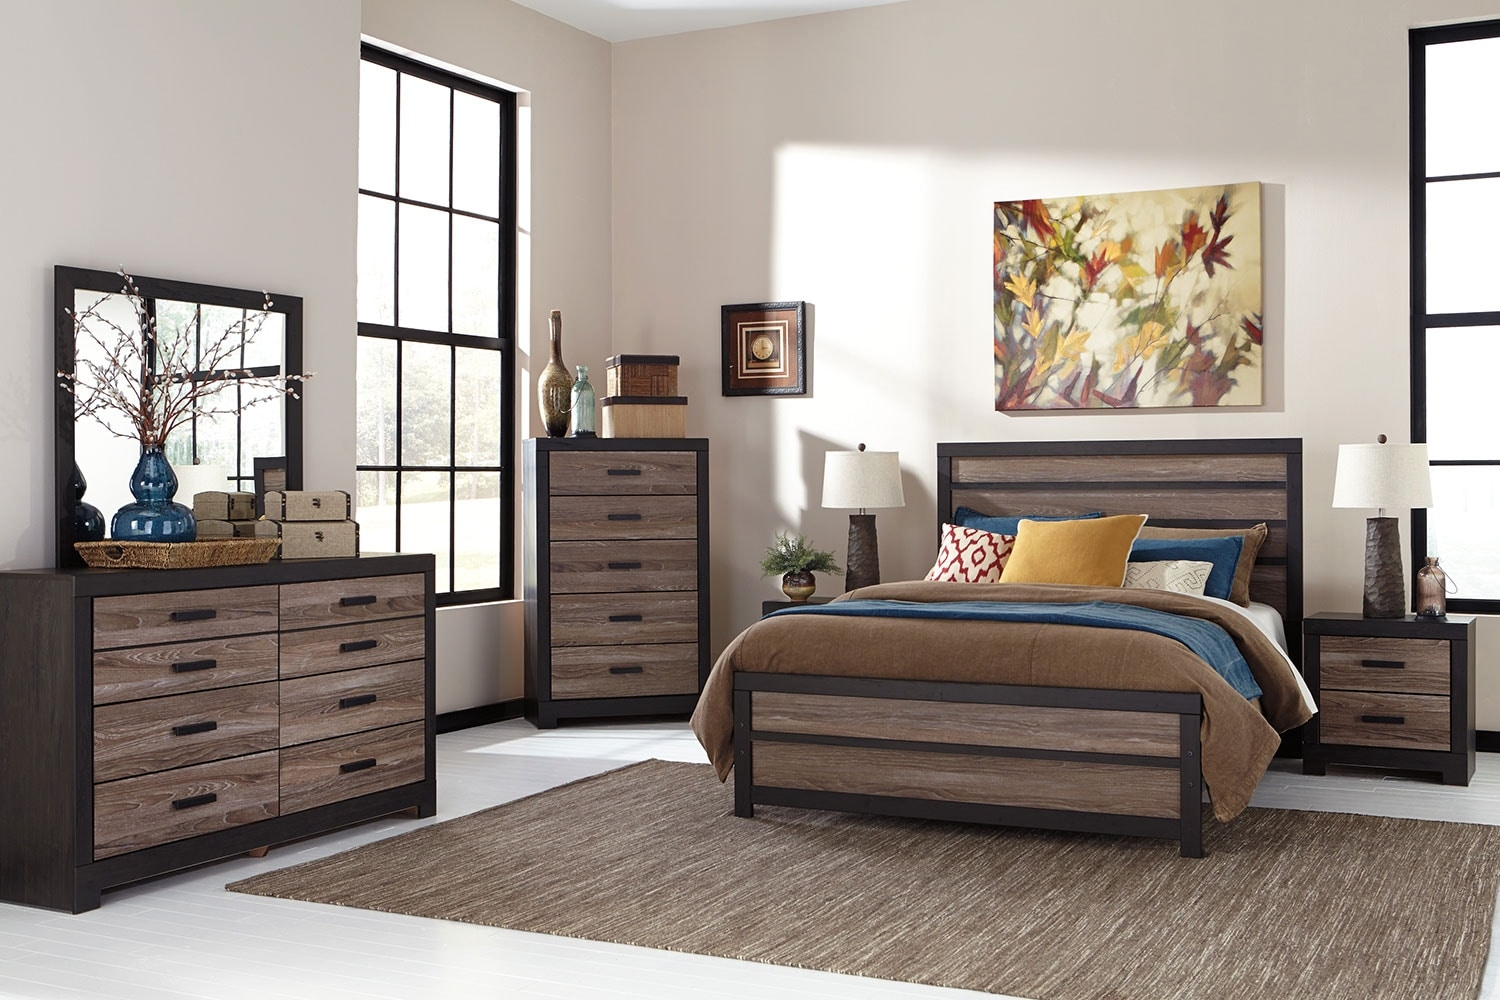 Harlinton 7-Piece King Bedroom Package